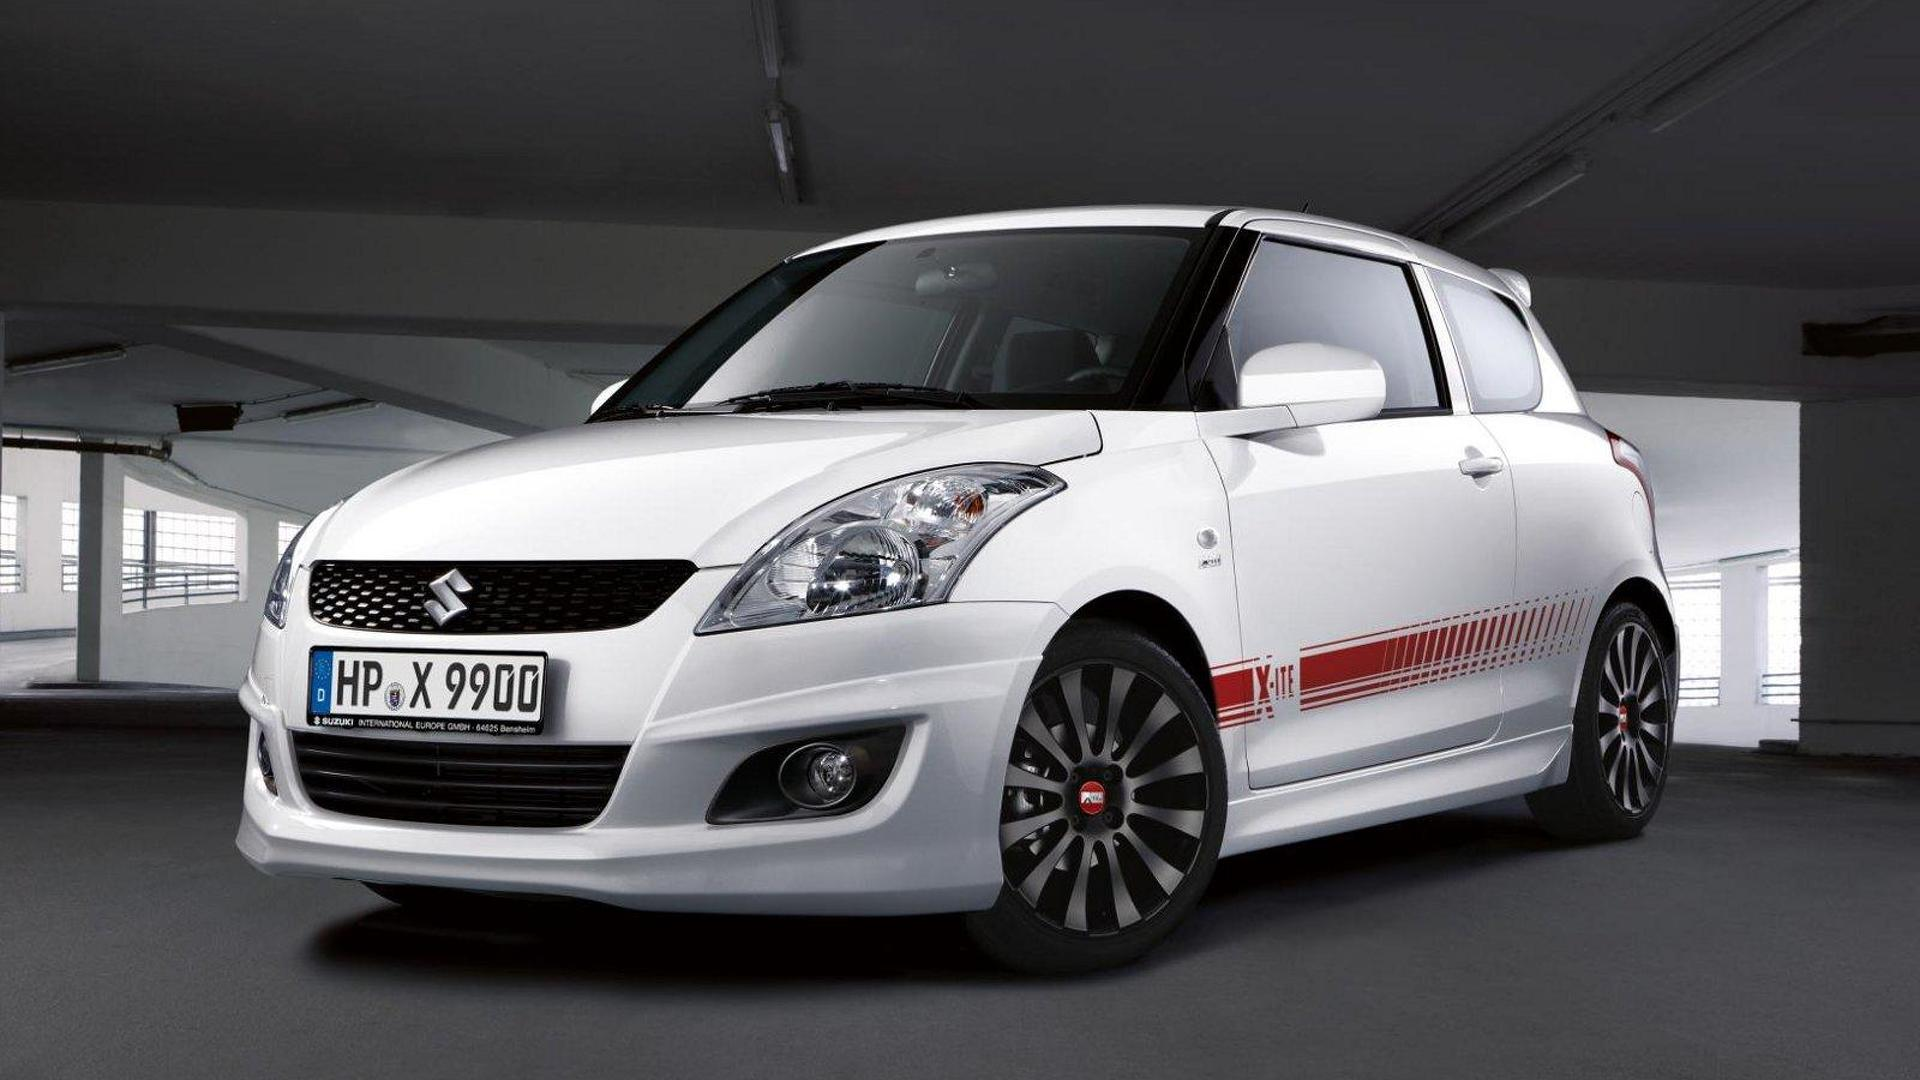 Suzuki Swift X-ITE accessories announced